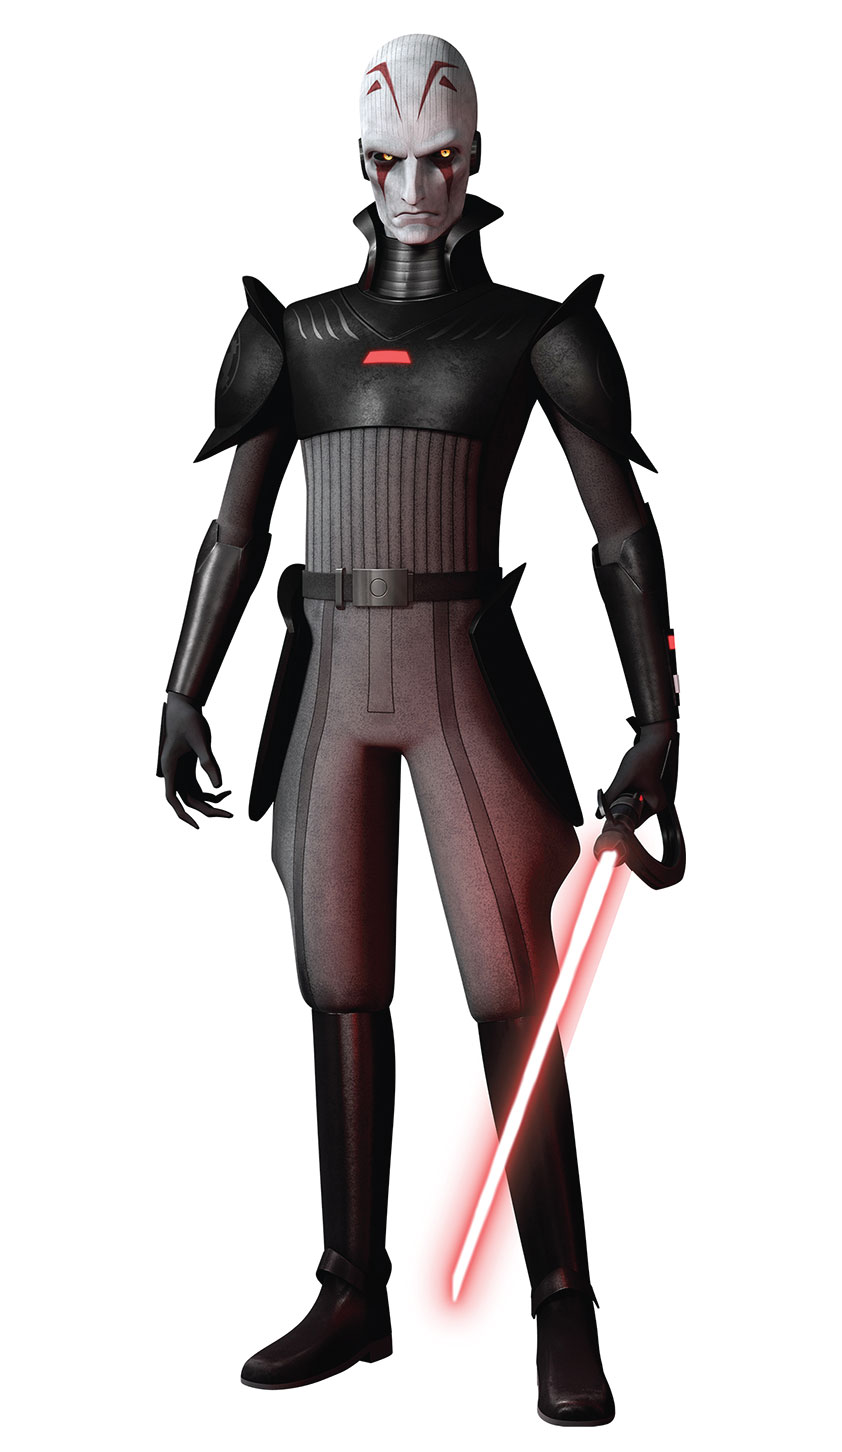 The Grand Inquisitor | Star Wars Rebels Wiki | Fandom powered by Wikia